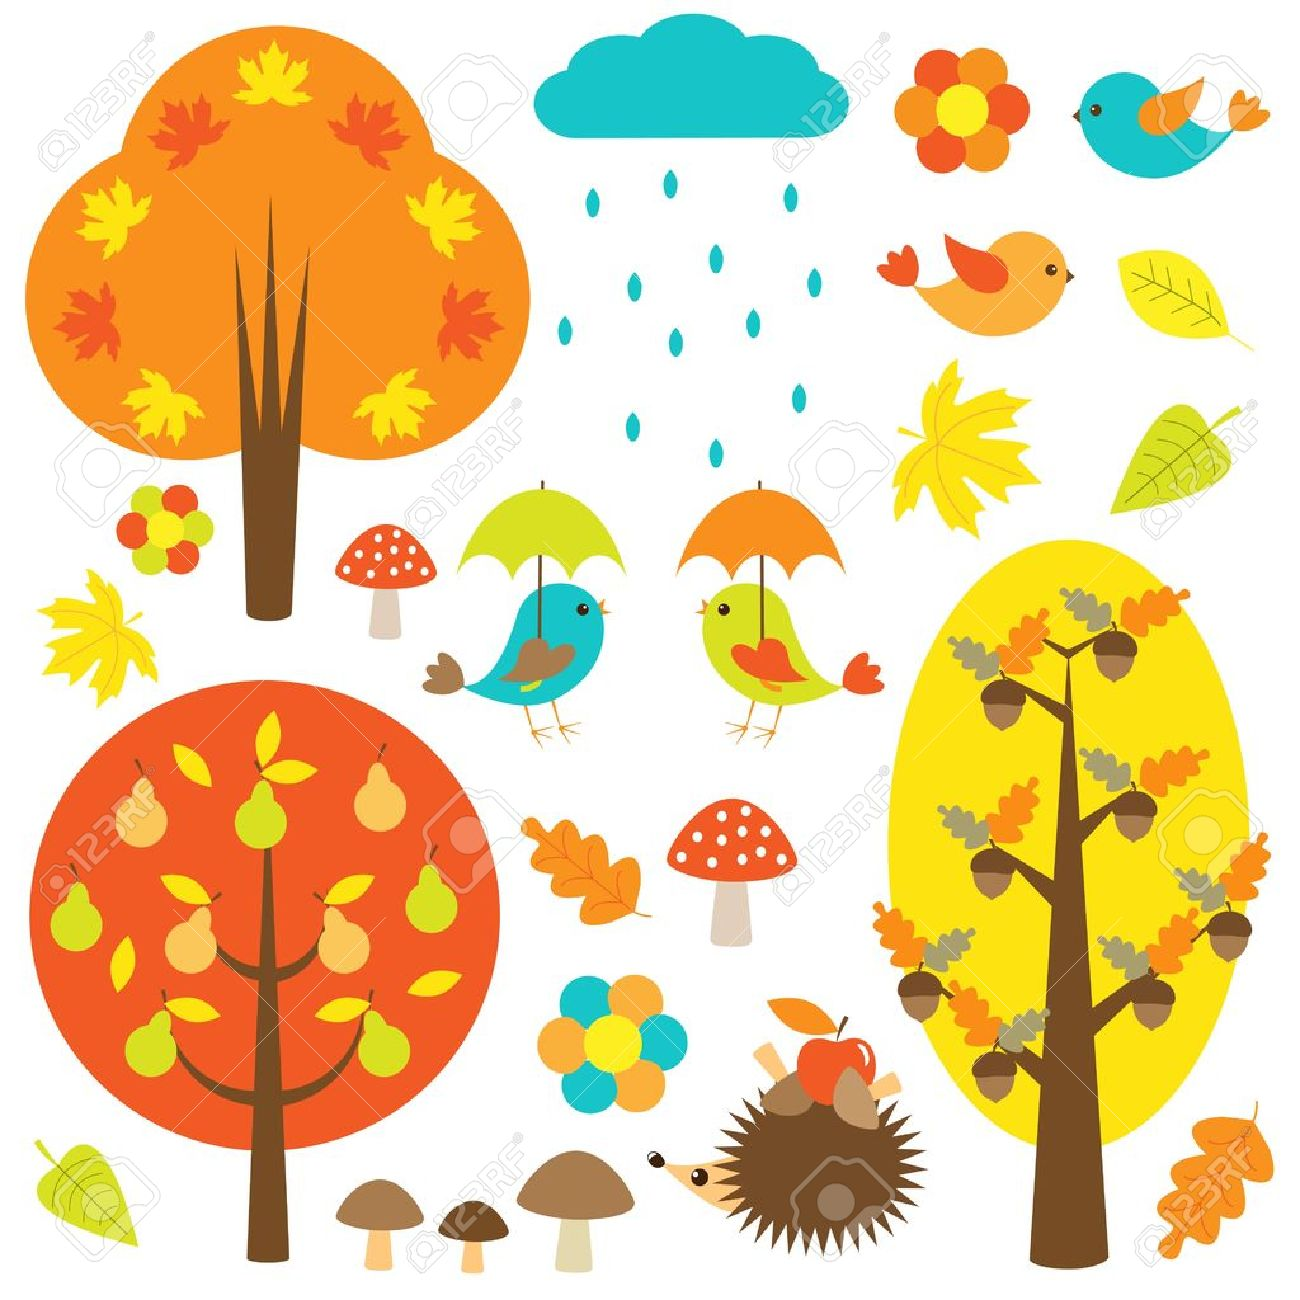 Birds and trees in autumn. Stock Vector - 14266256